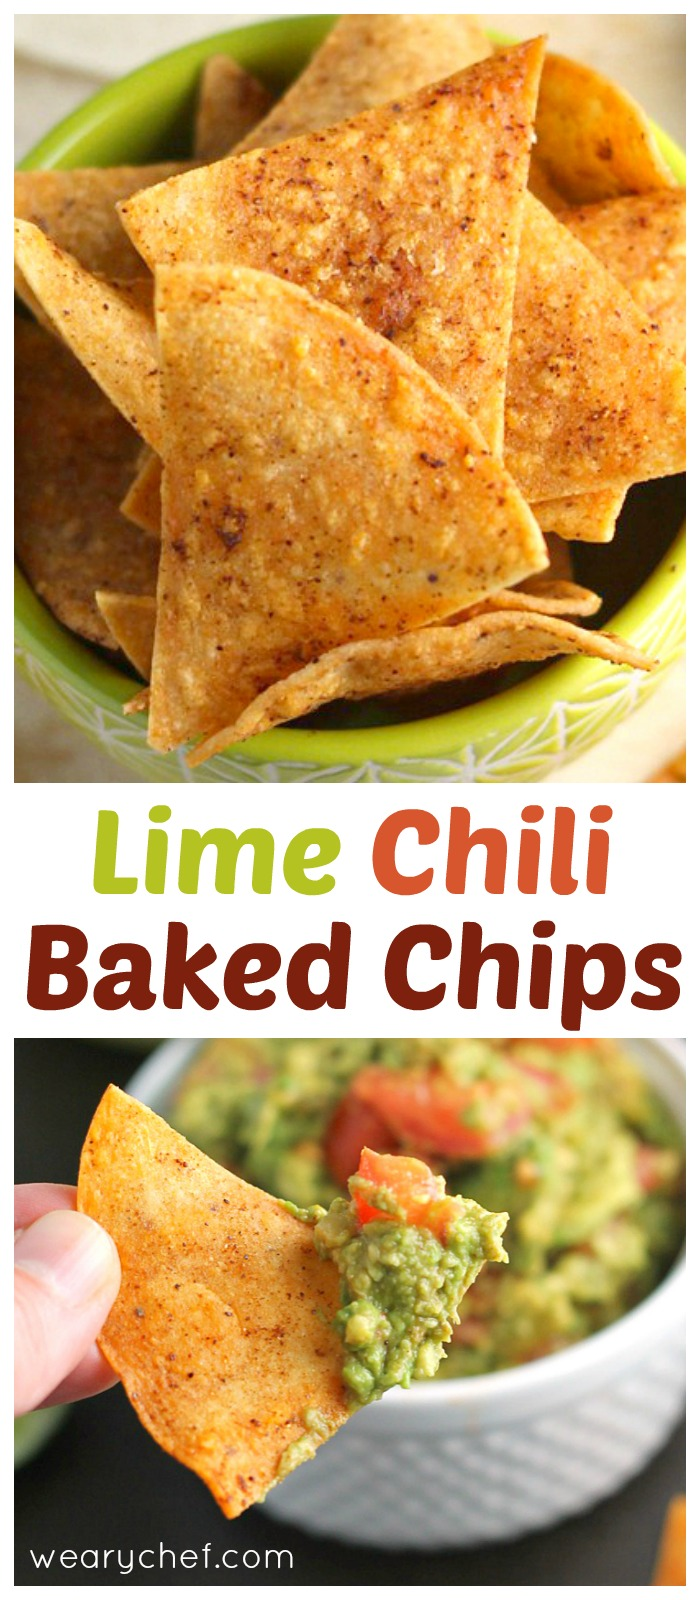 These easy baked corn tortilla chips with lime and chili flavor are low in fat and perfect for dipping! #lowfat #healthy #chips #corn #tortilla